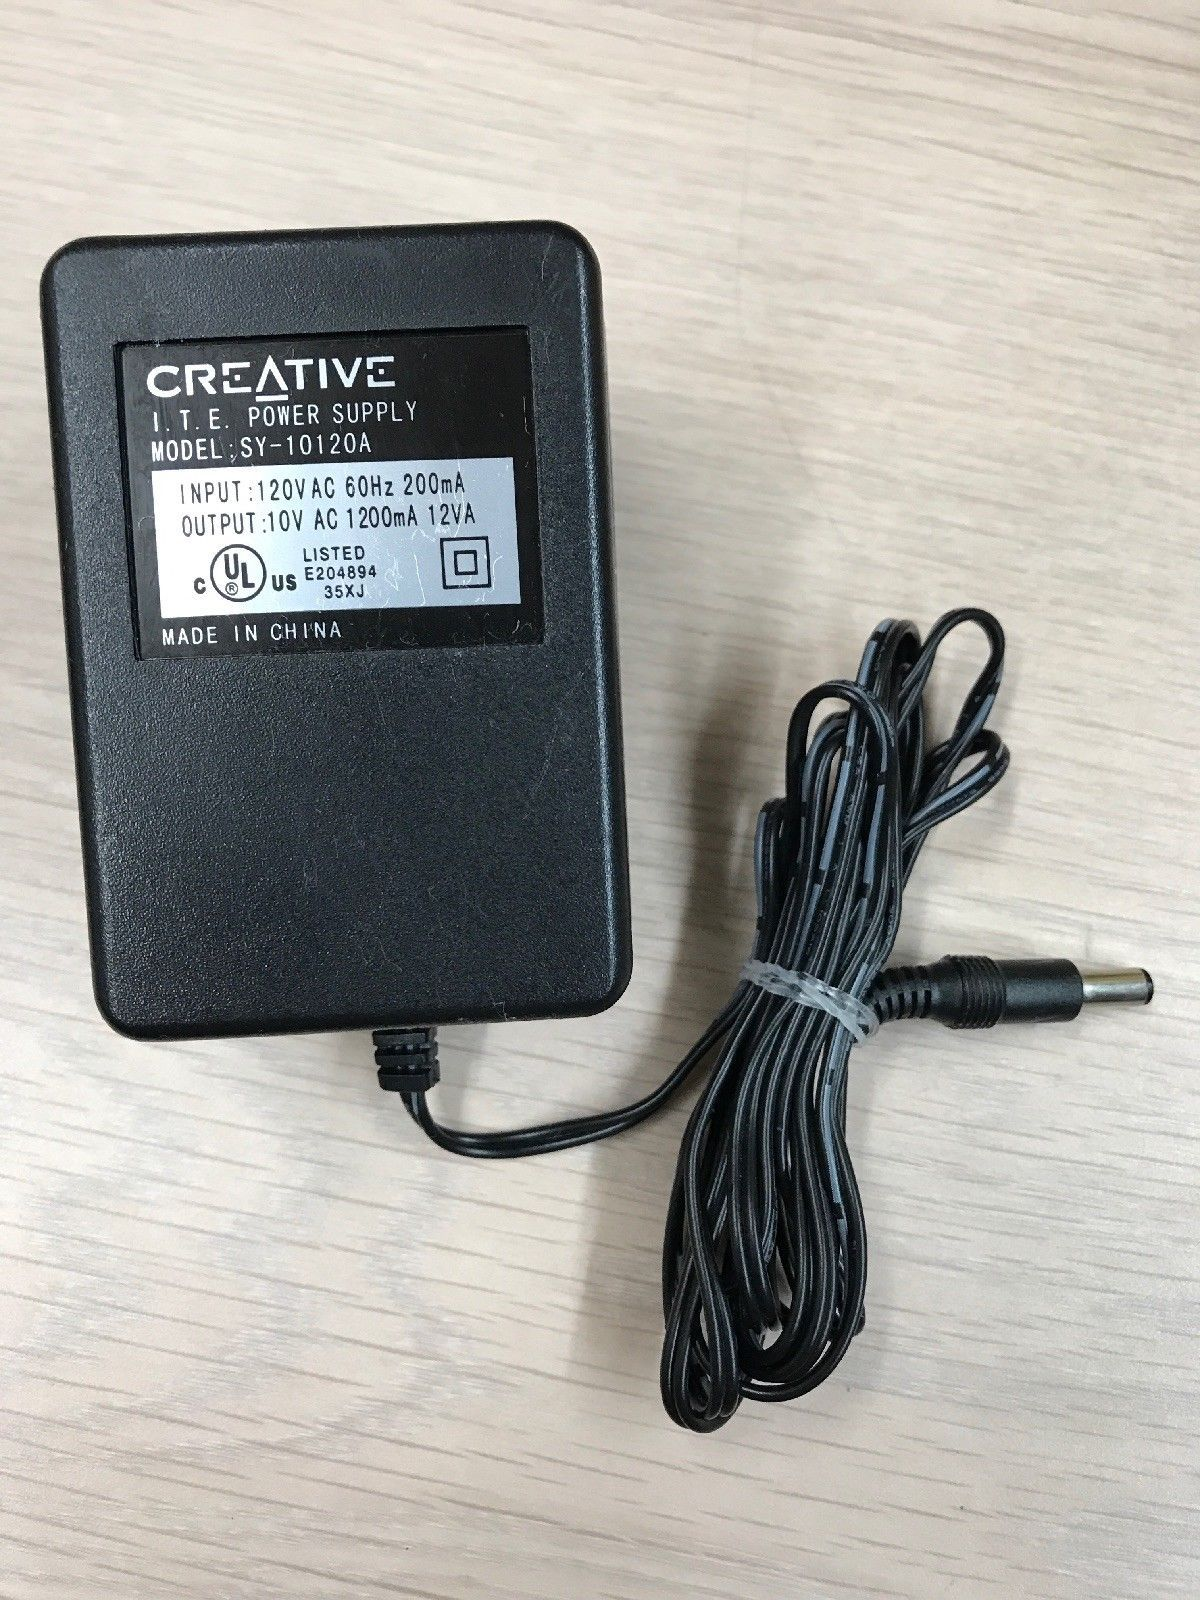 Free Shipping Ac 110 Or 230v Dc 48v Power Supply 48v 25a Power Supply 1200w 0 48v Adjustable Power Supply S 1200 48 Analog Signal Analog Power Supply